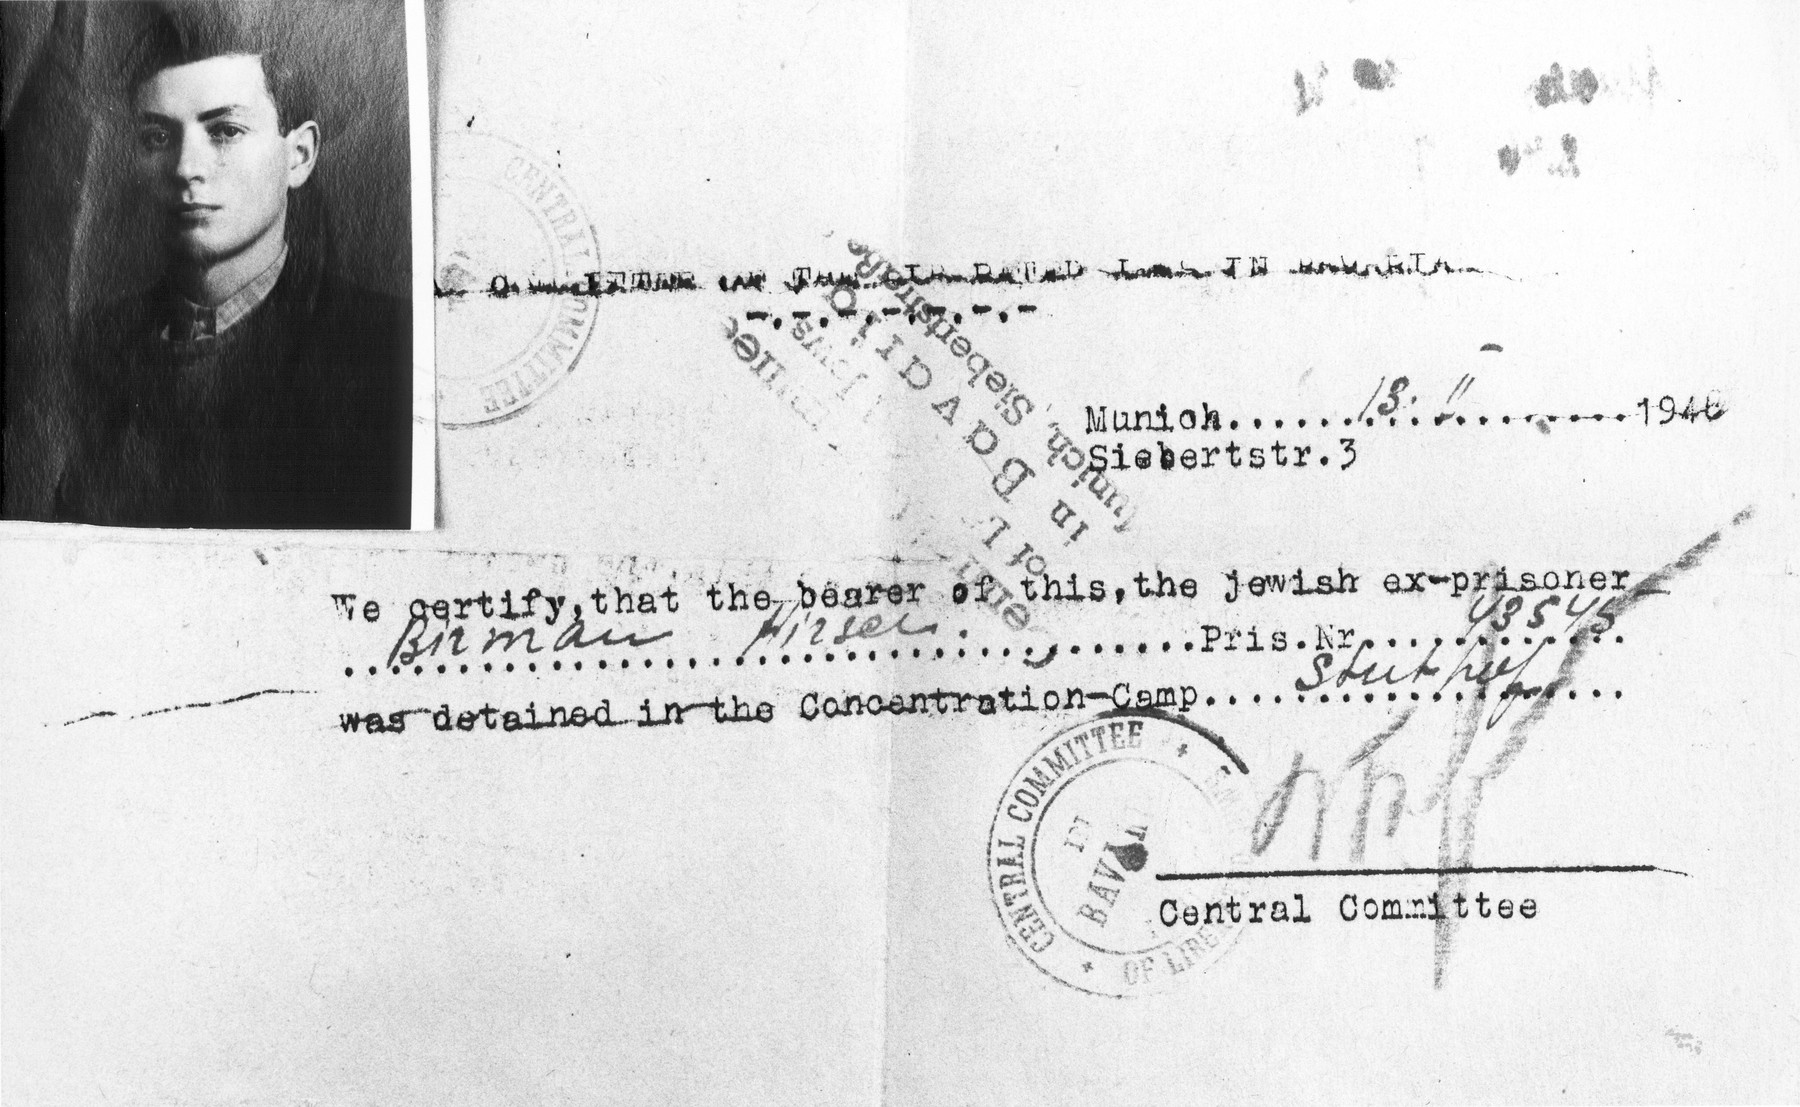 Identification papers issued to Hirsch Birman by the Central Committee for Liberated Jews in Bavaria attesting to the fact that he had been a prisoner at the Stutthof concentration camp.